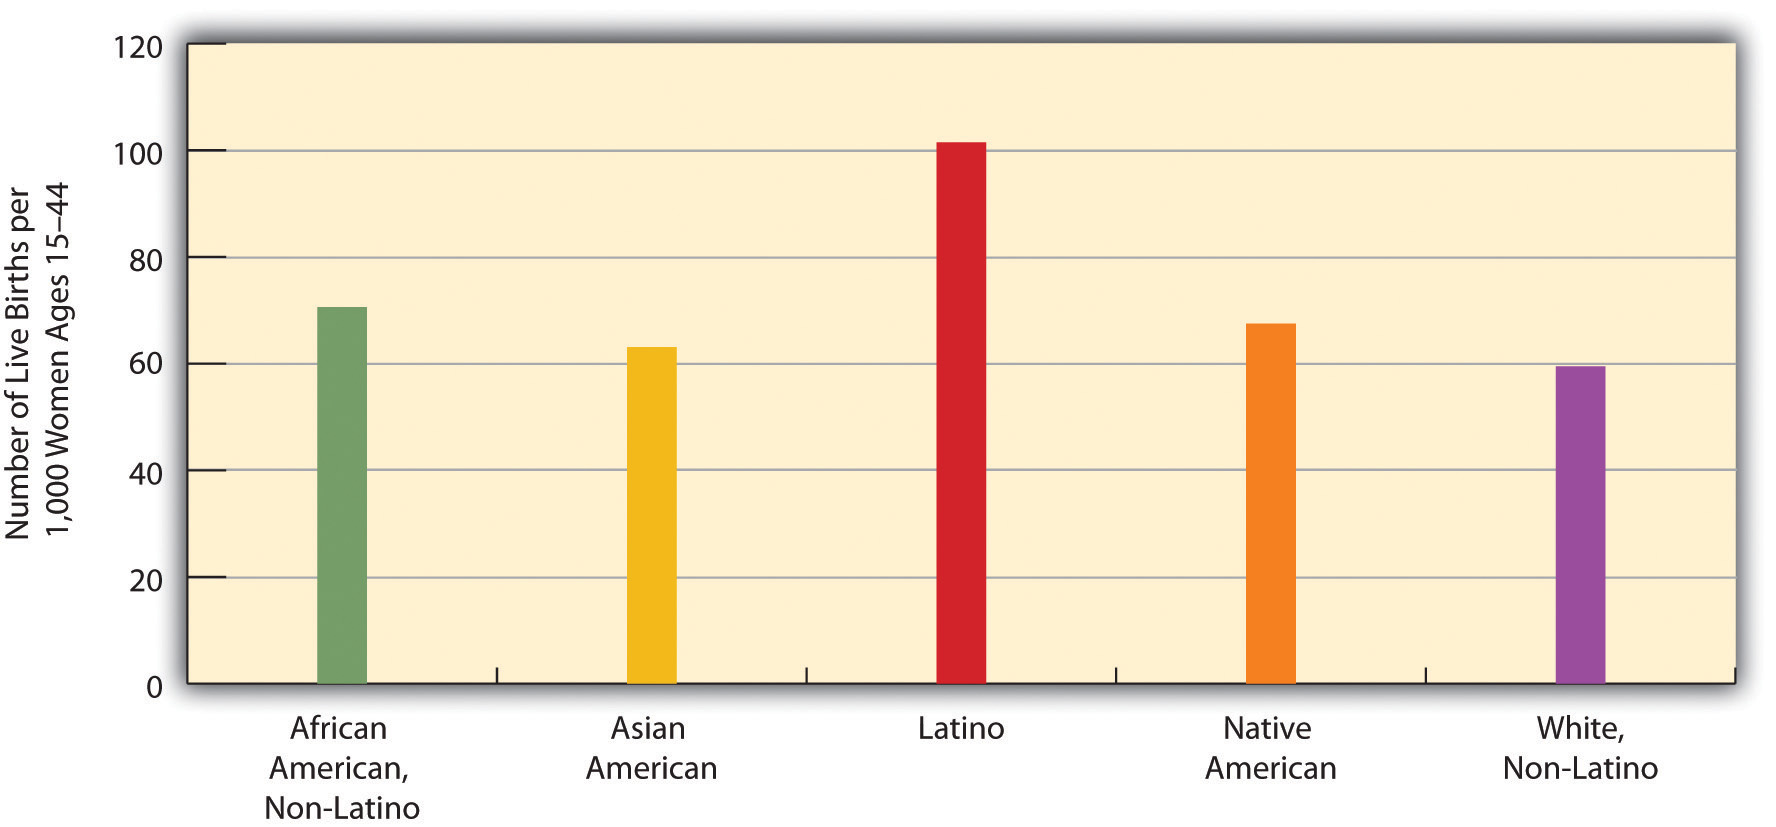 Race, Ethnicity, and US Fertility Rates, 2006